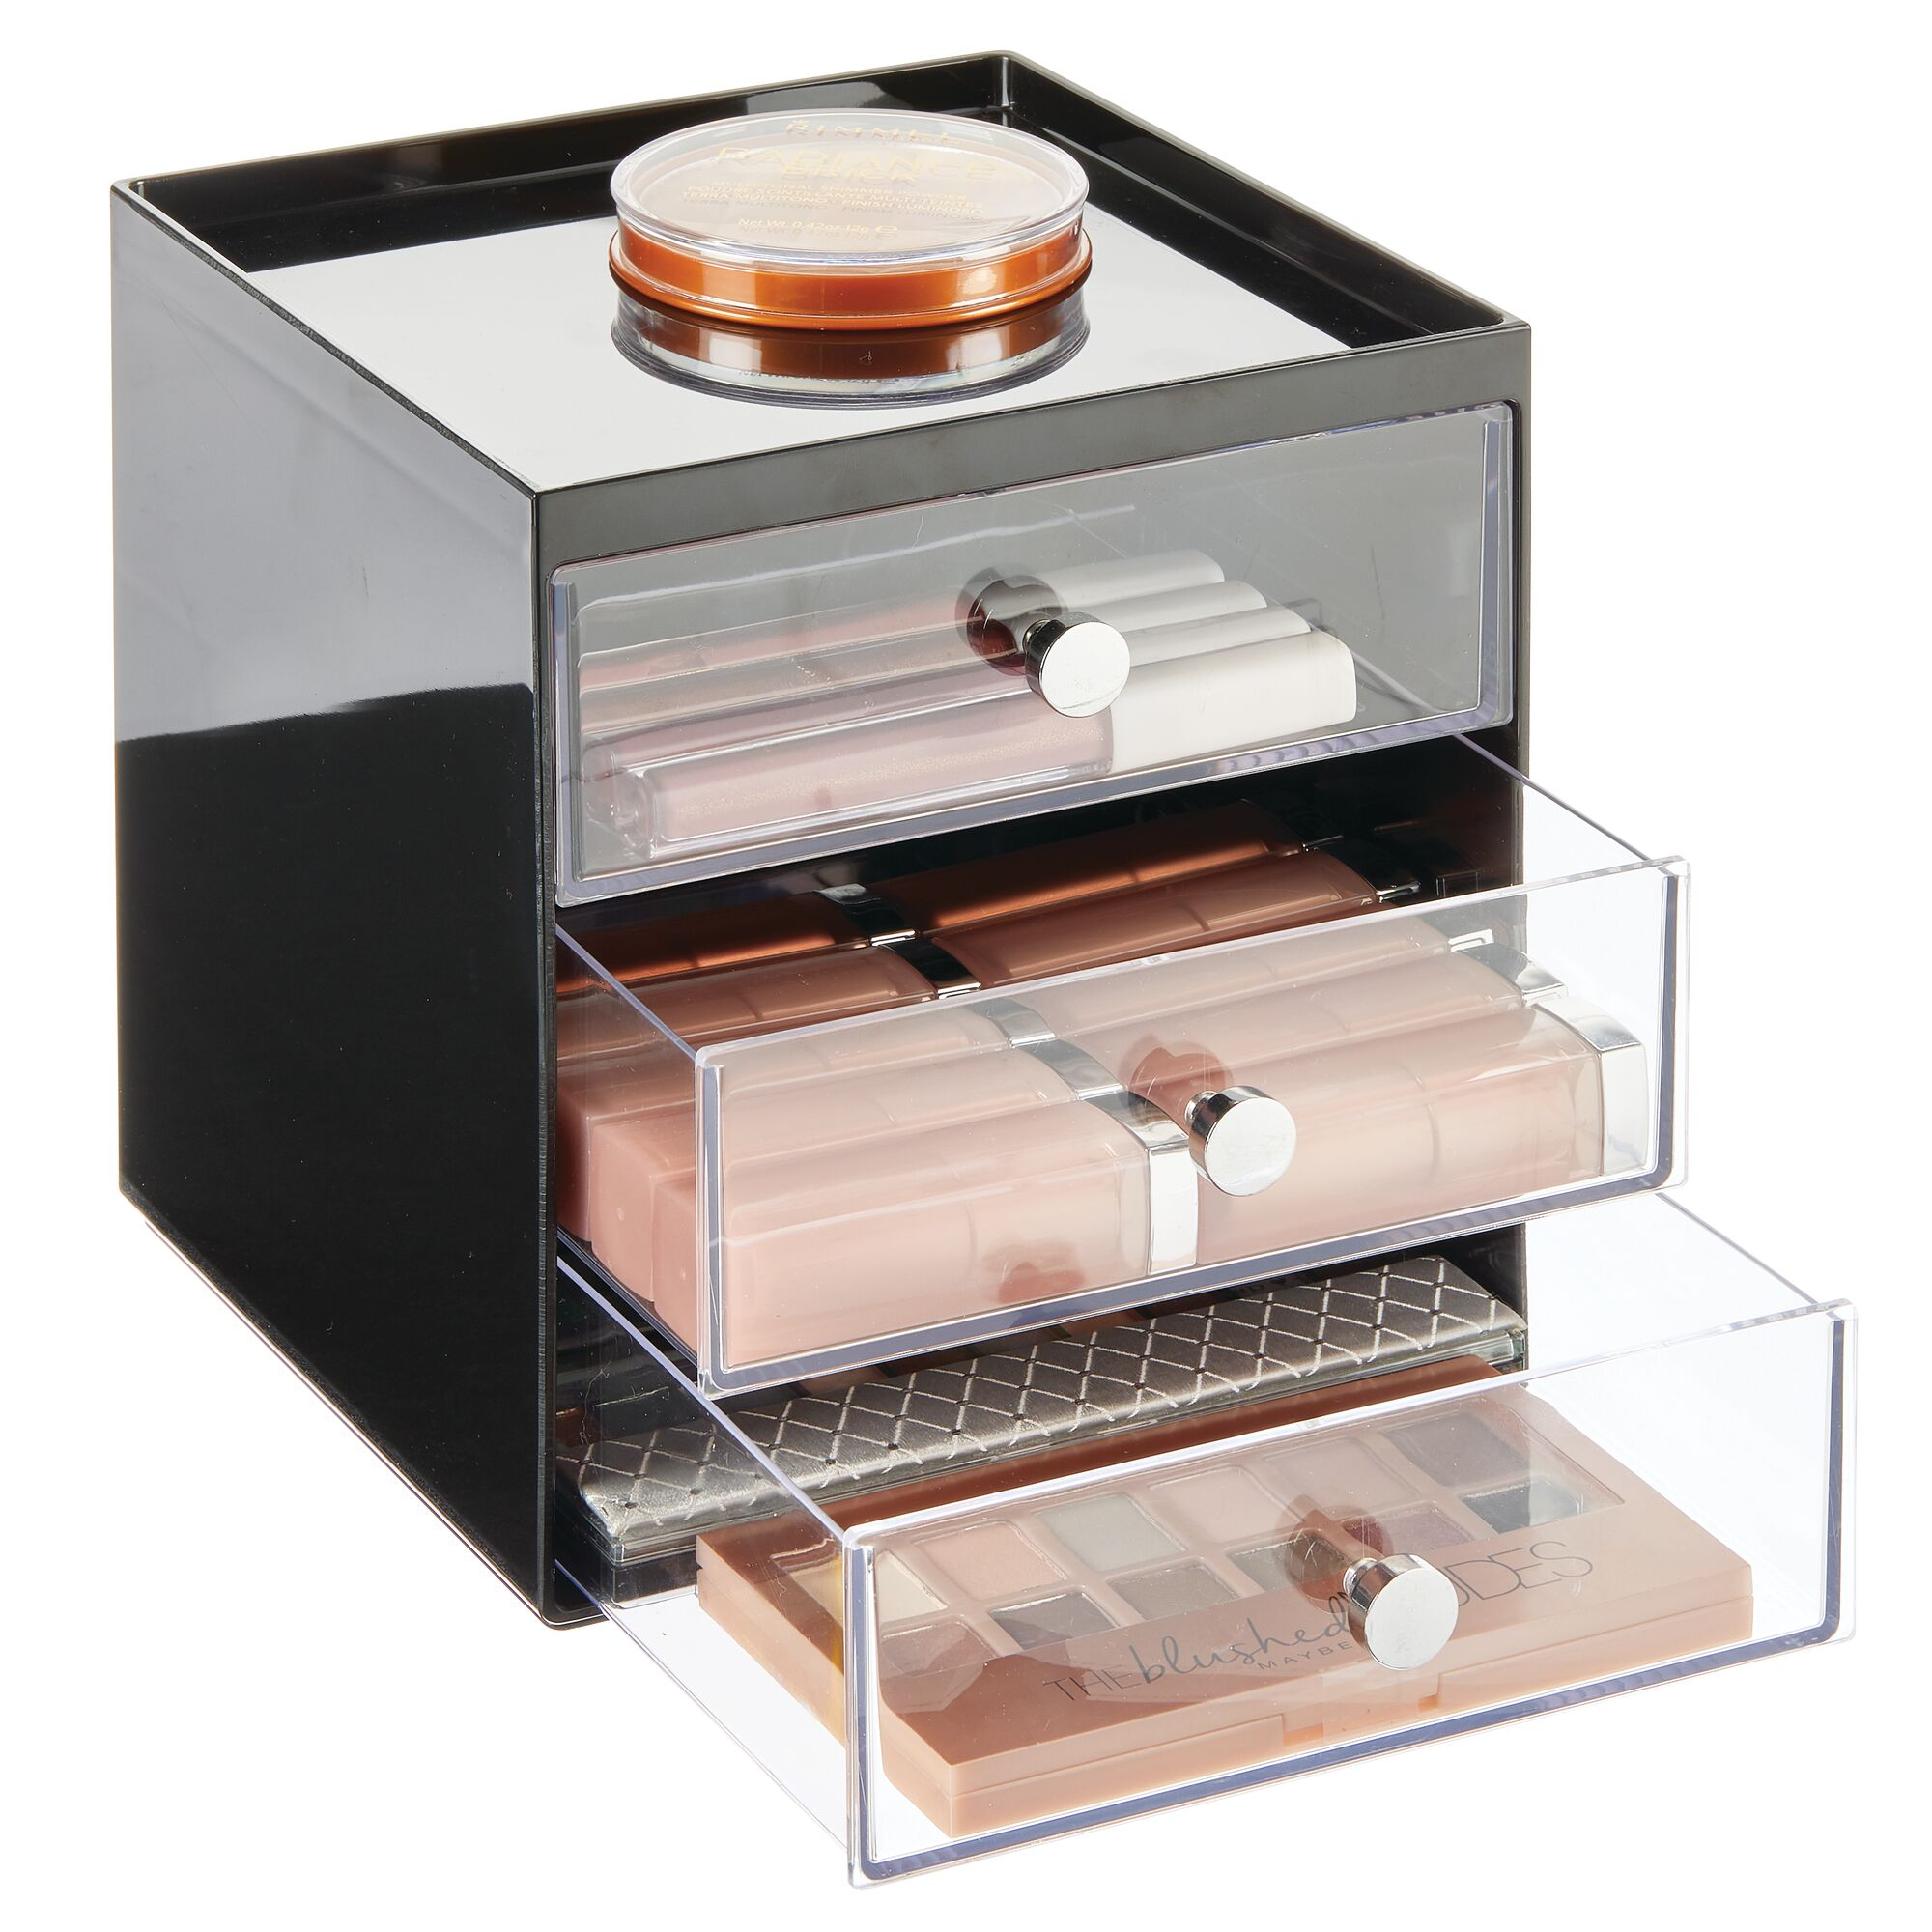 mDesign-Plastic-Makeup-Storage-Organizer-Cube-3-Drawers thumbnail 19